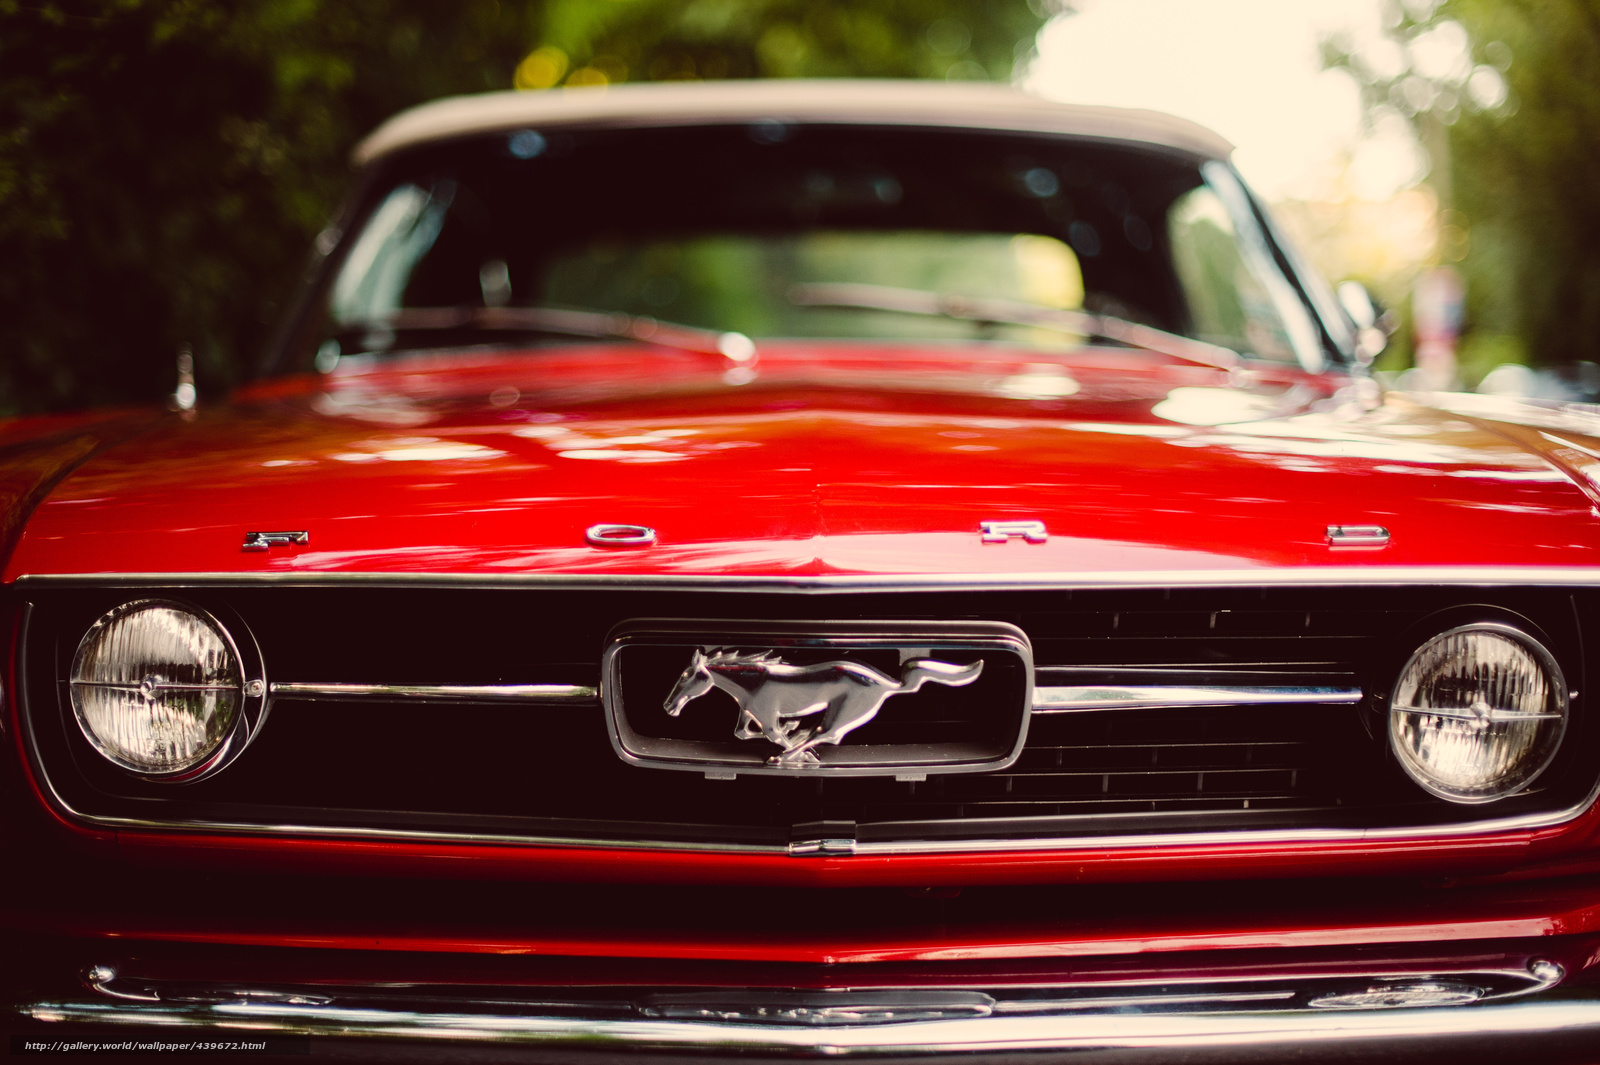 439672 ford mustang red classic ford mustang krasnyj avto 4163x2770 1600x1065